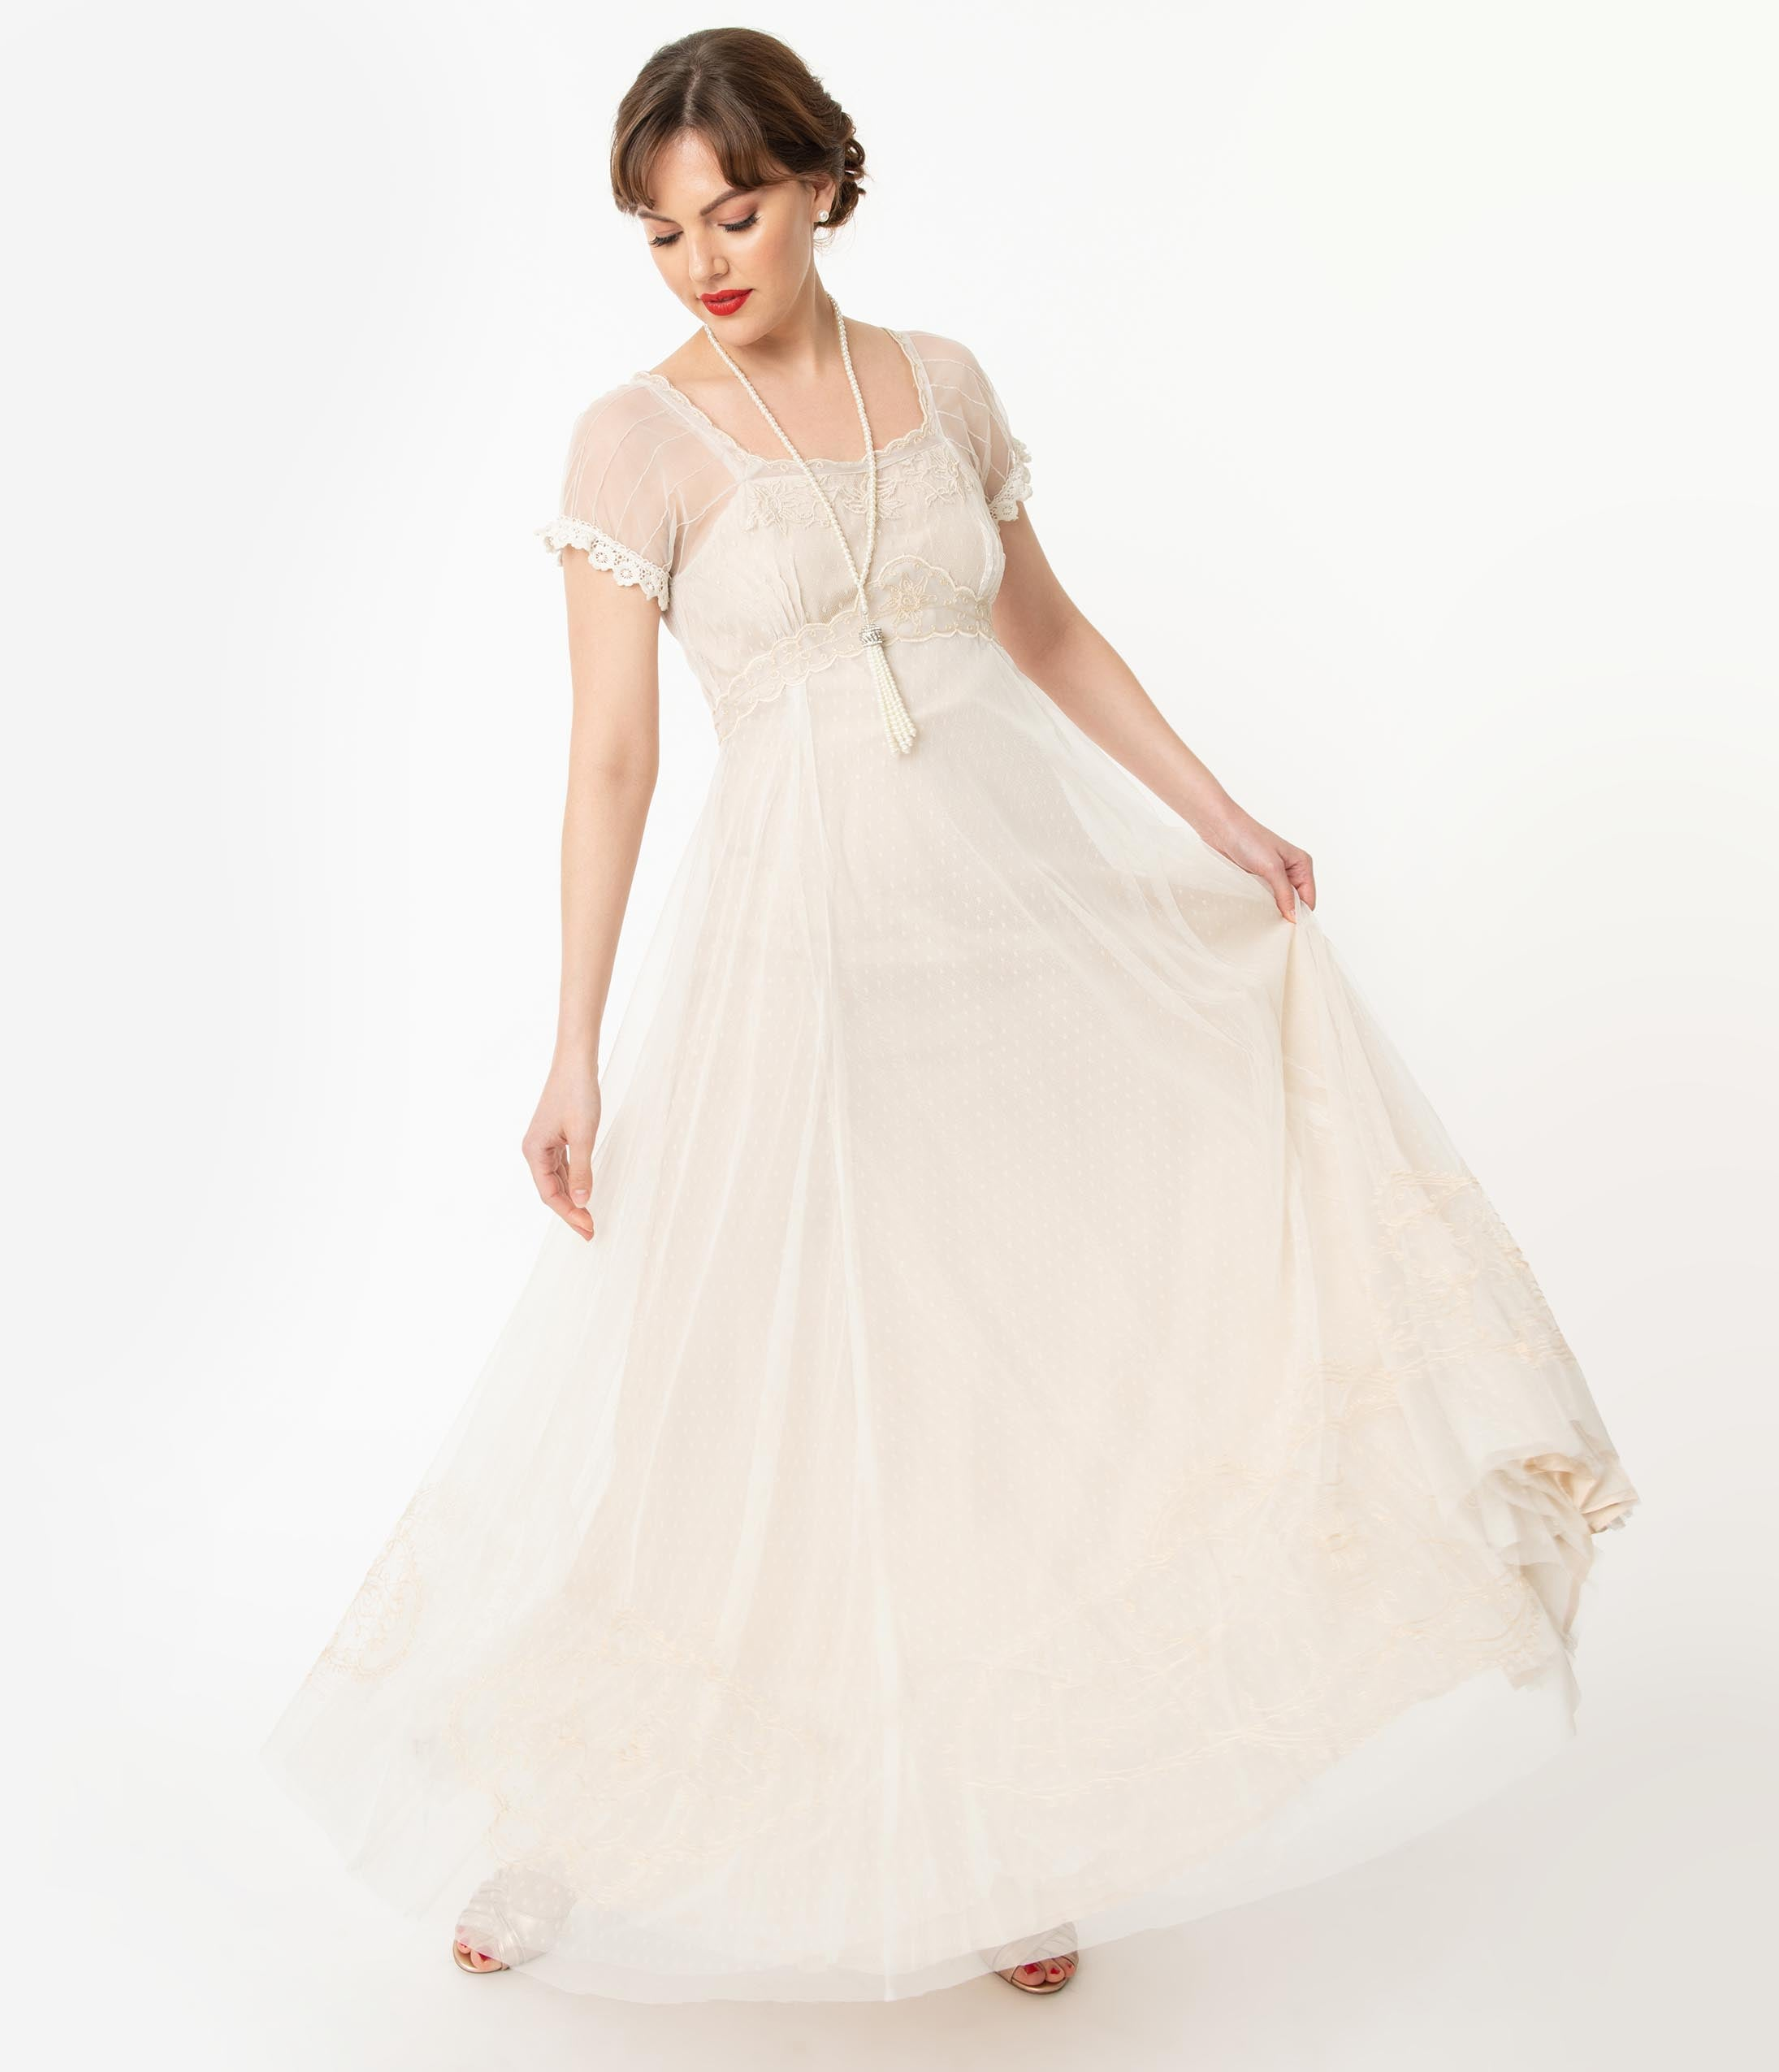 1900 -1910s Edwardian Fashion, Clothing & Costumes Vintage Style Ivory  Beige Edwardian Wedding Dress $378.00 AT vintagedancer.com